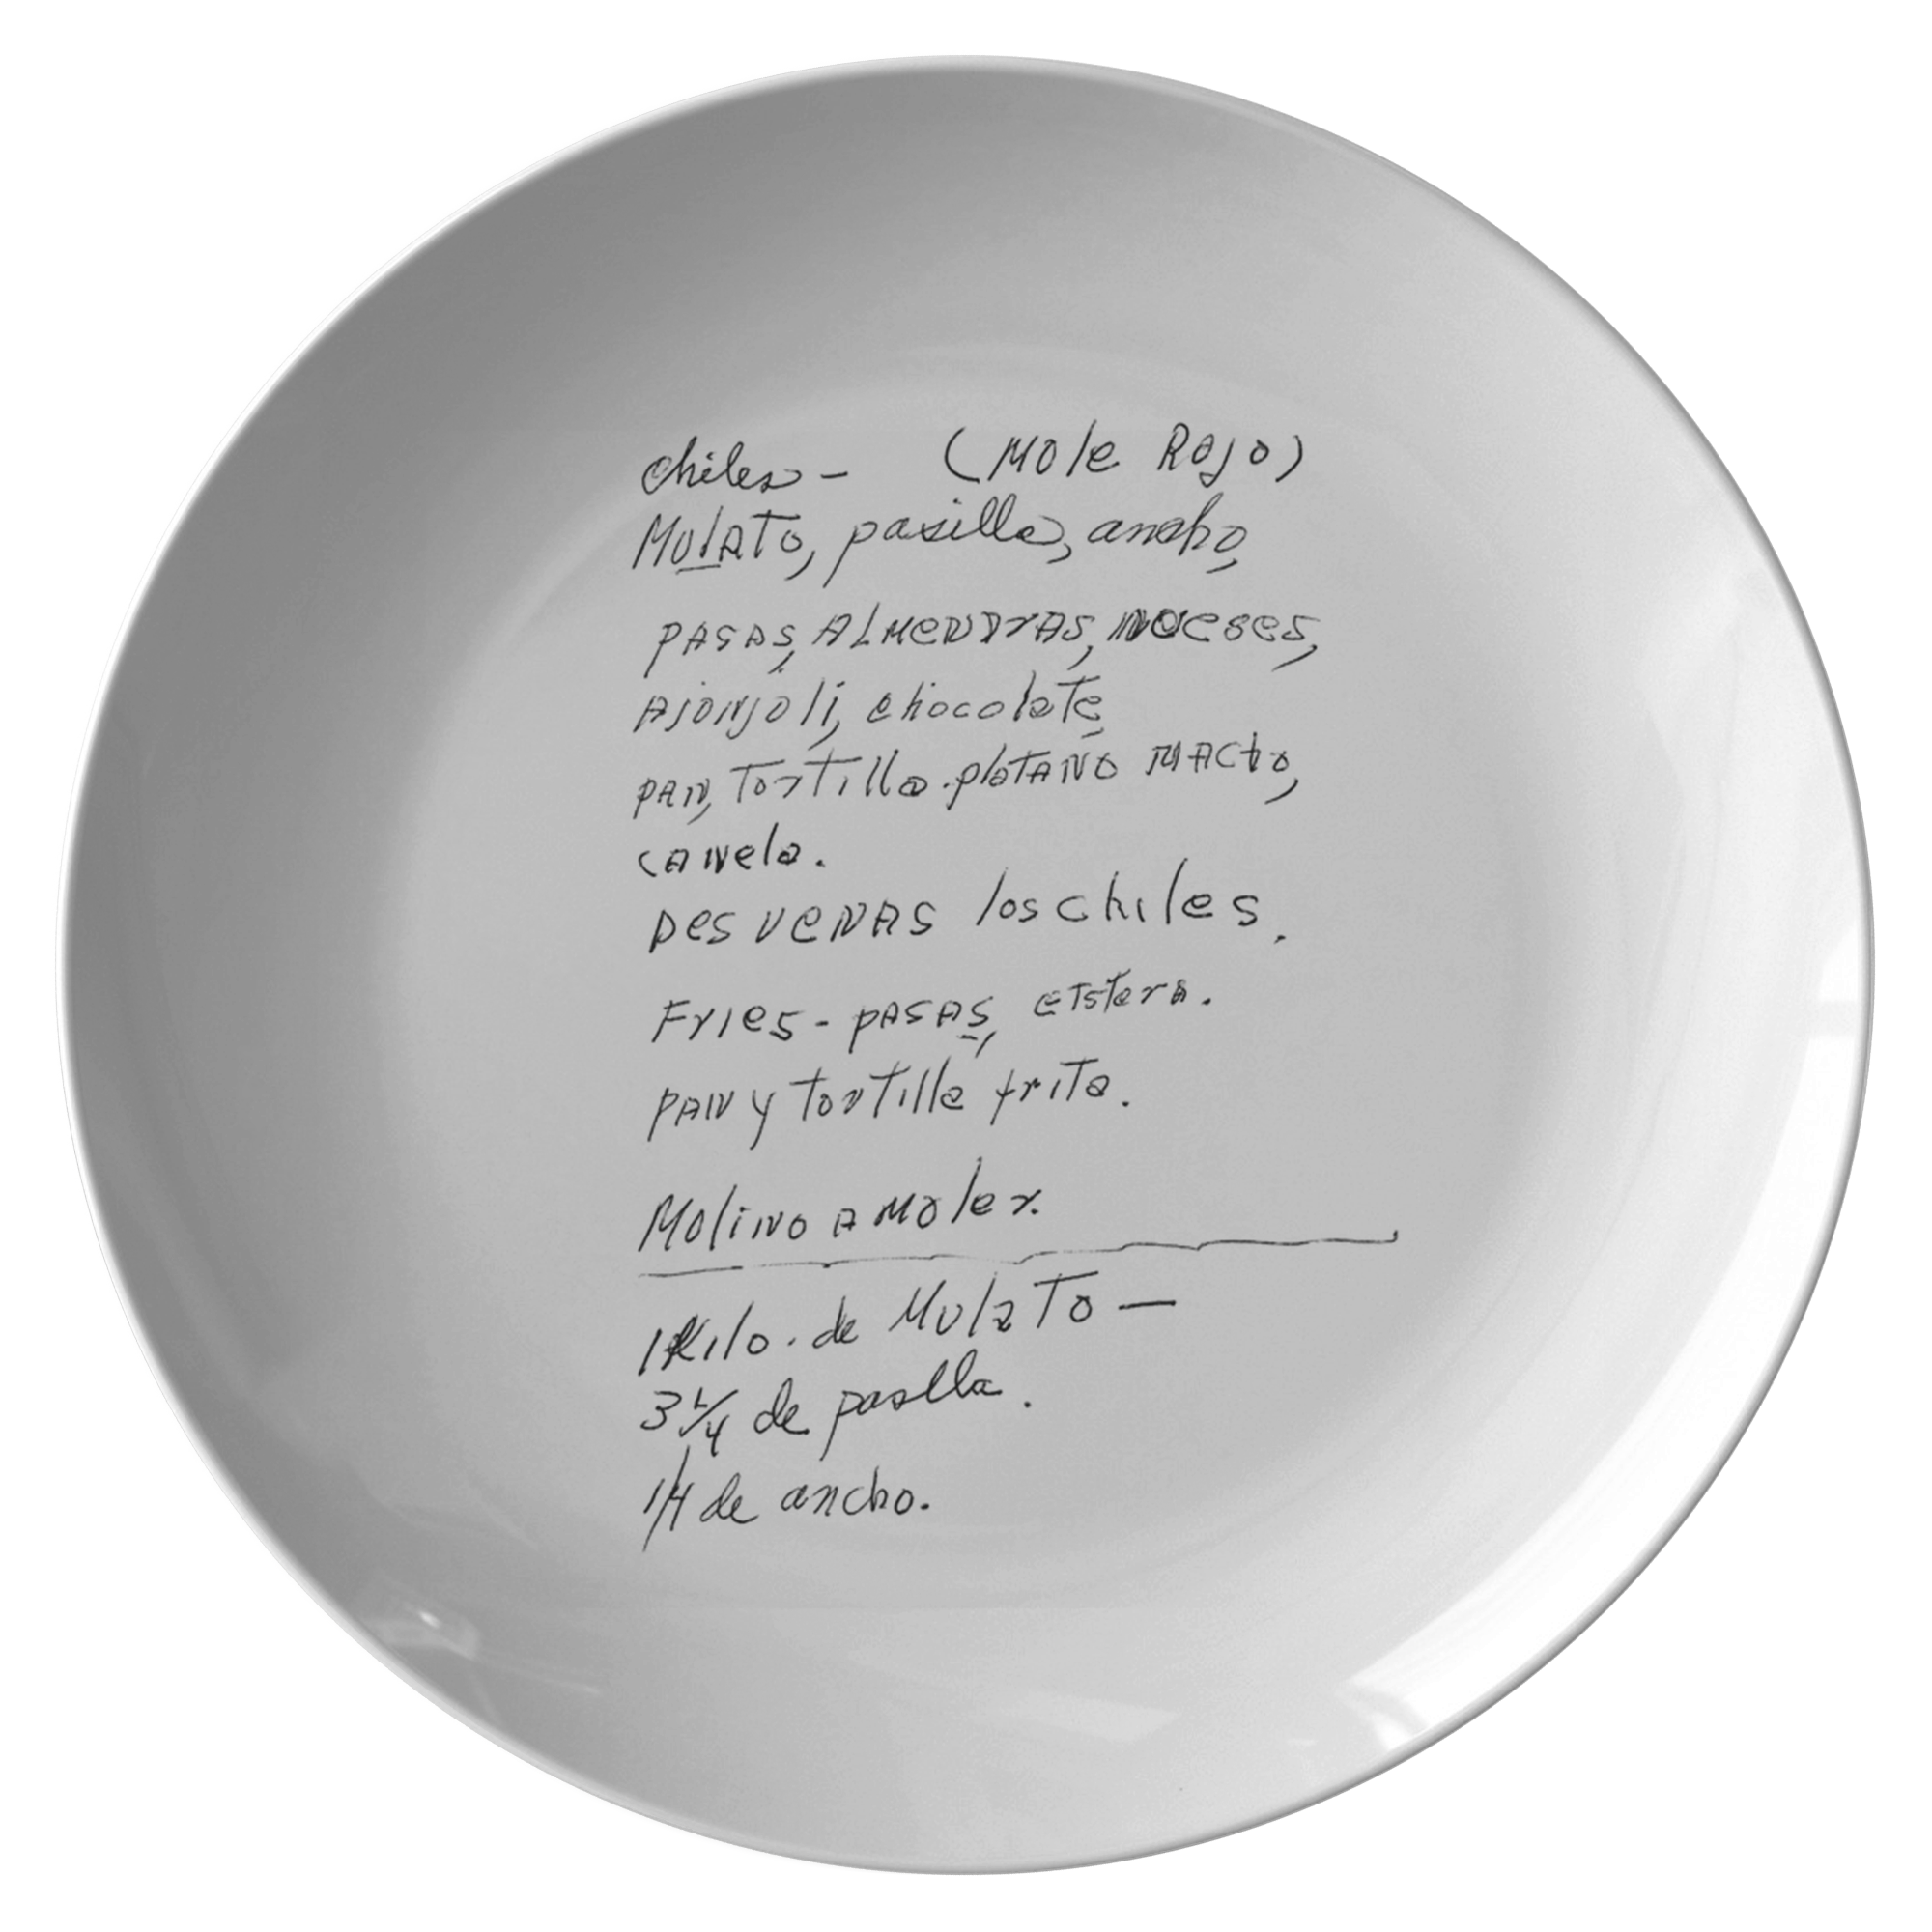 Recipe plate for Morales - 24th Ave Designs